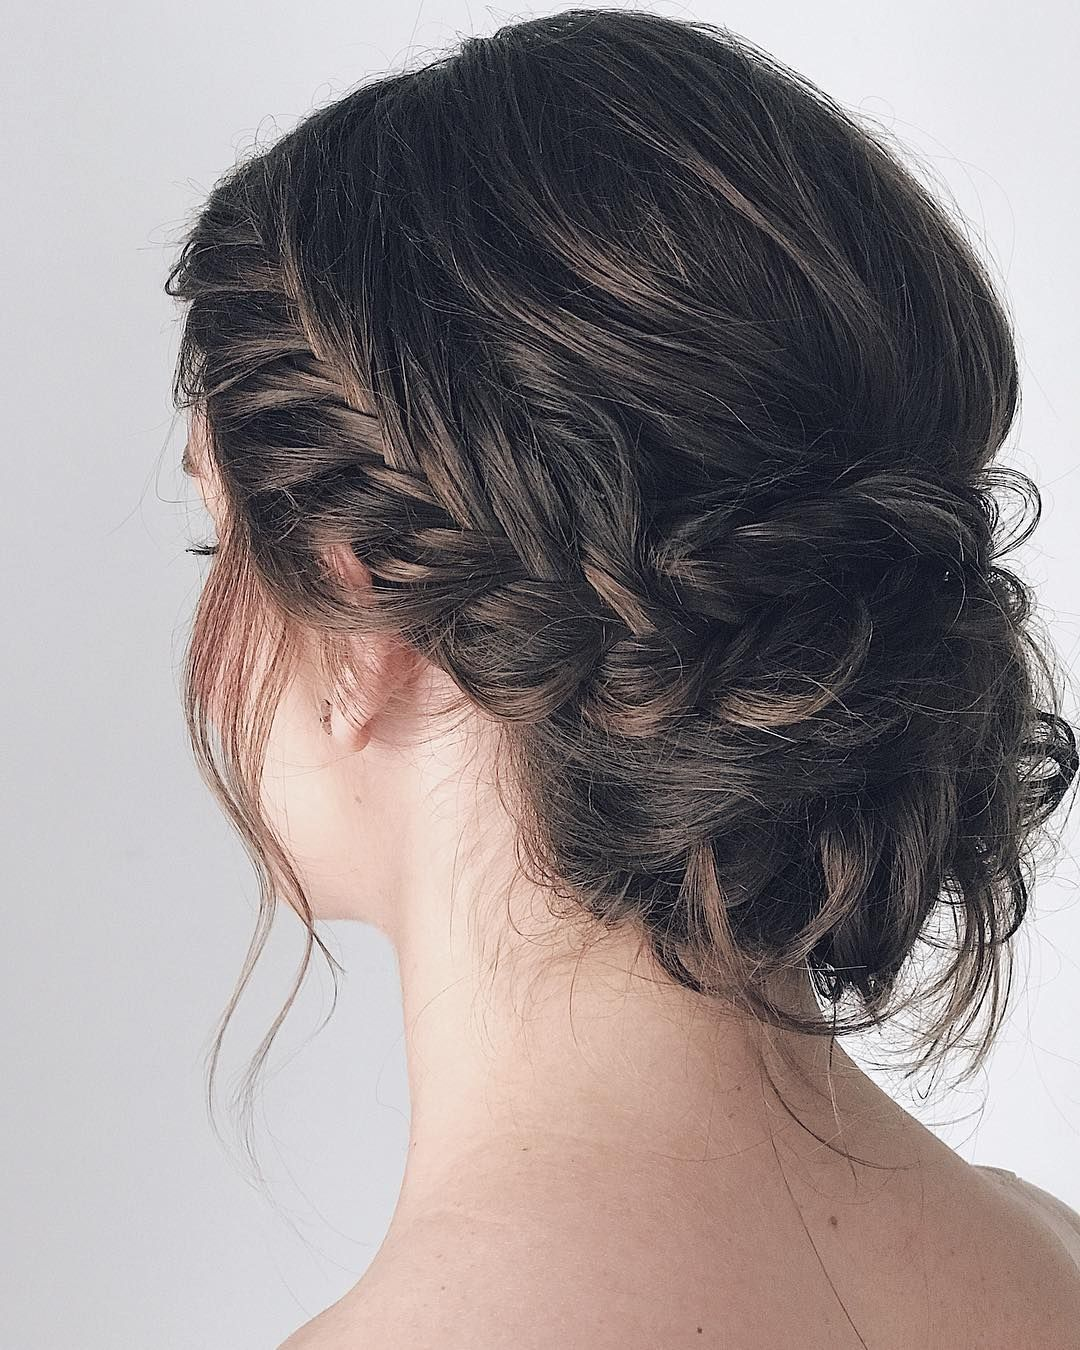 twisted updo hairstyle #hairstyle #hairstyles #updo